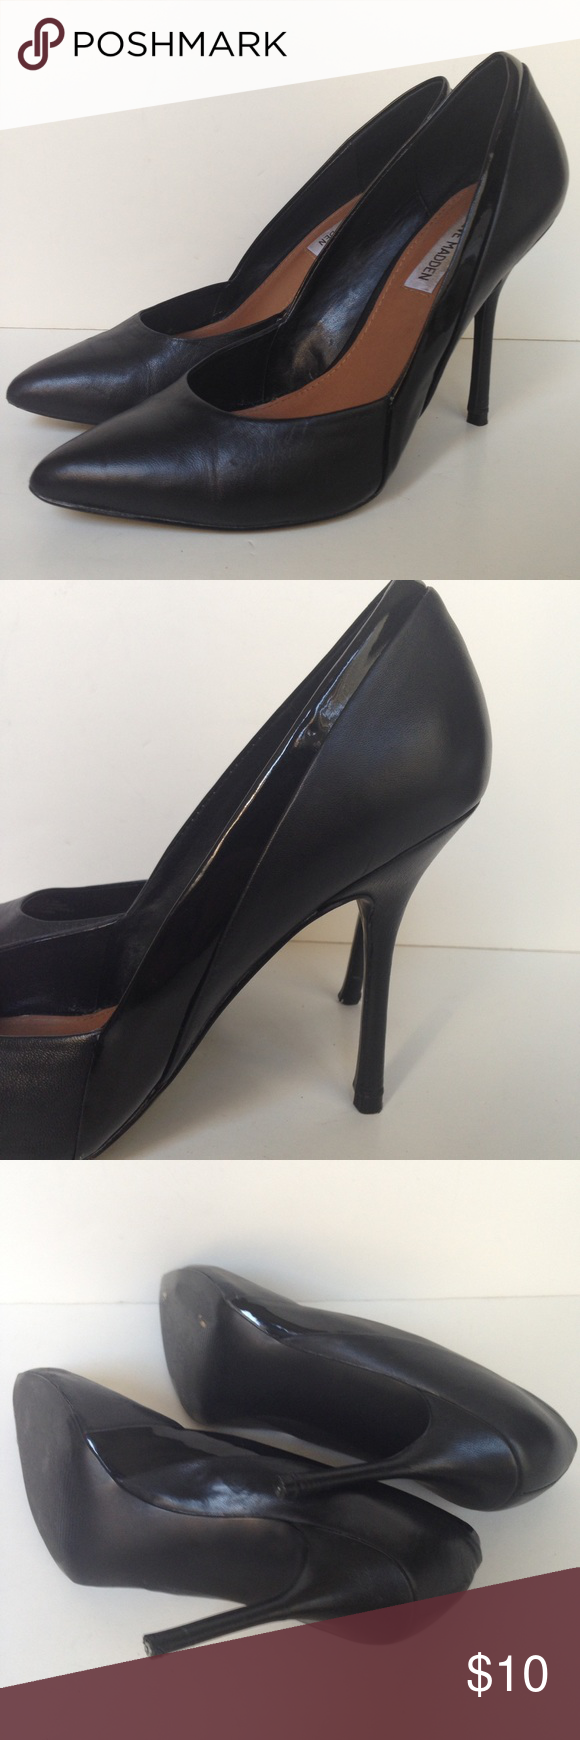 Clydee Black Pointy Heels 8.5 Leather These had not been worn more than 3 X but the heel popped off and needs a replacement to be good as new, repair is usu under $10. Other than that great almost new condition. Steve Madden Shoes